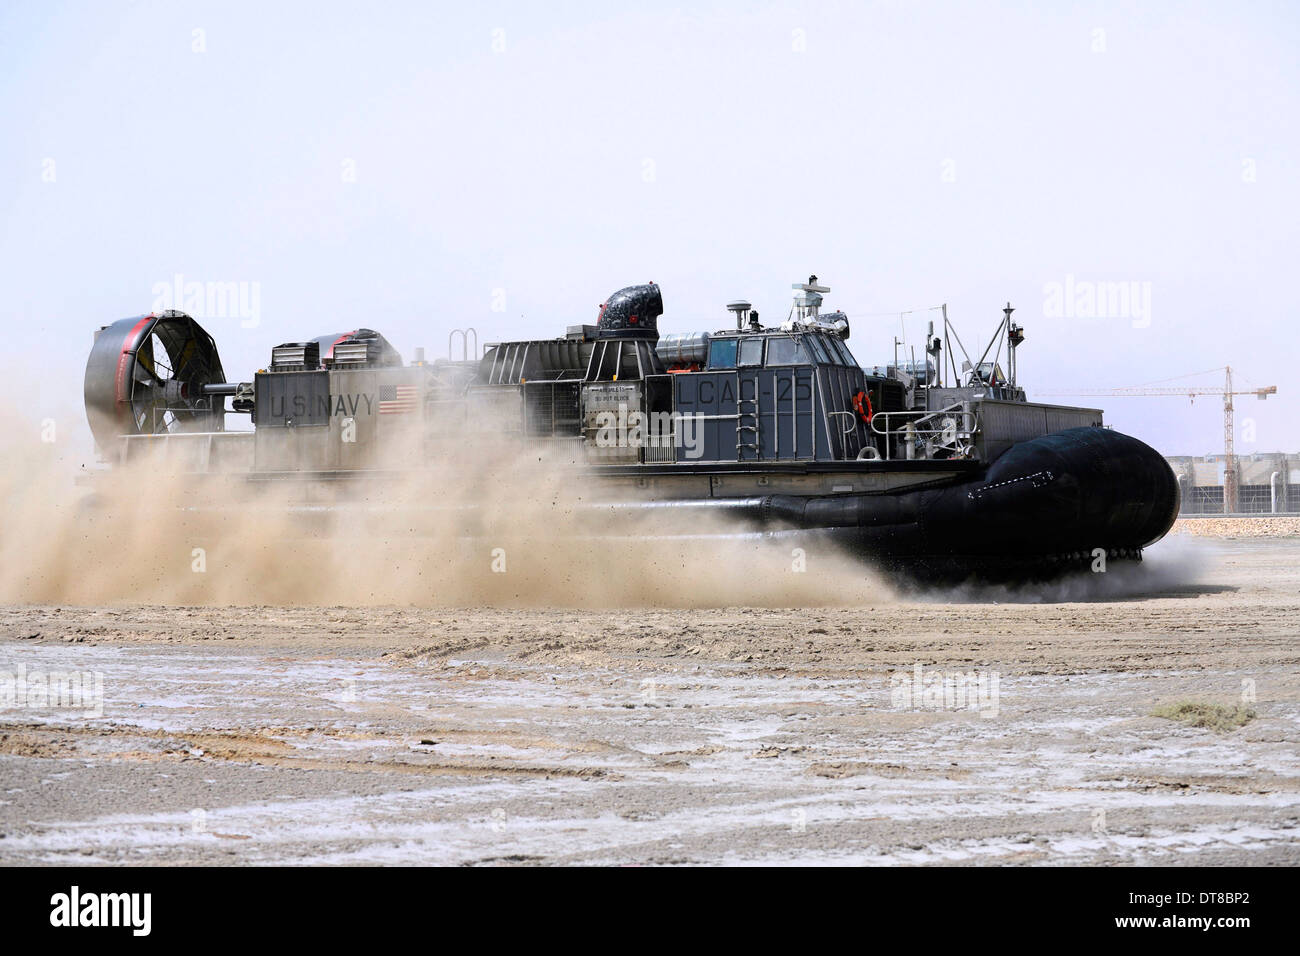 An air-cushion landing craft approaches the shore of Camp Al-Galail, Qatar. - Stock Image